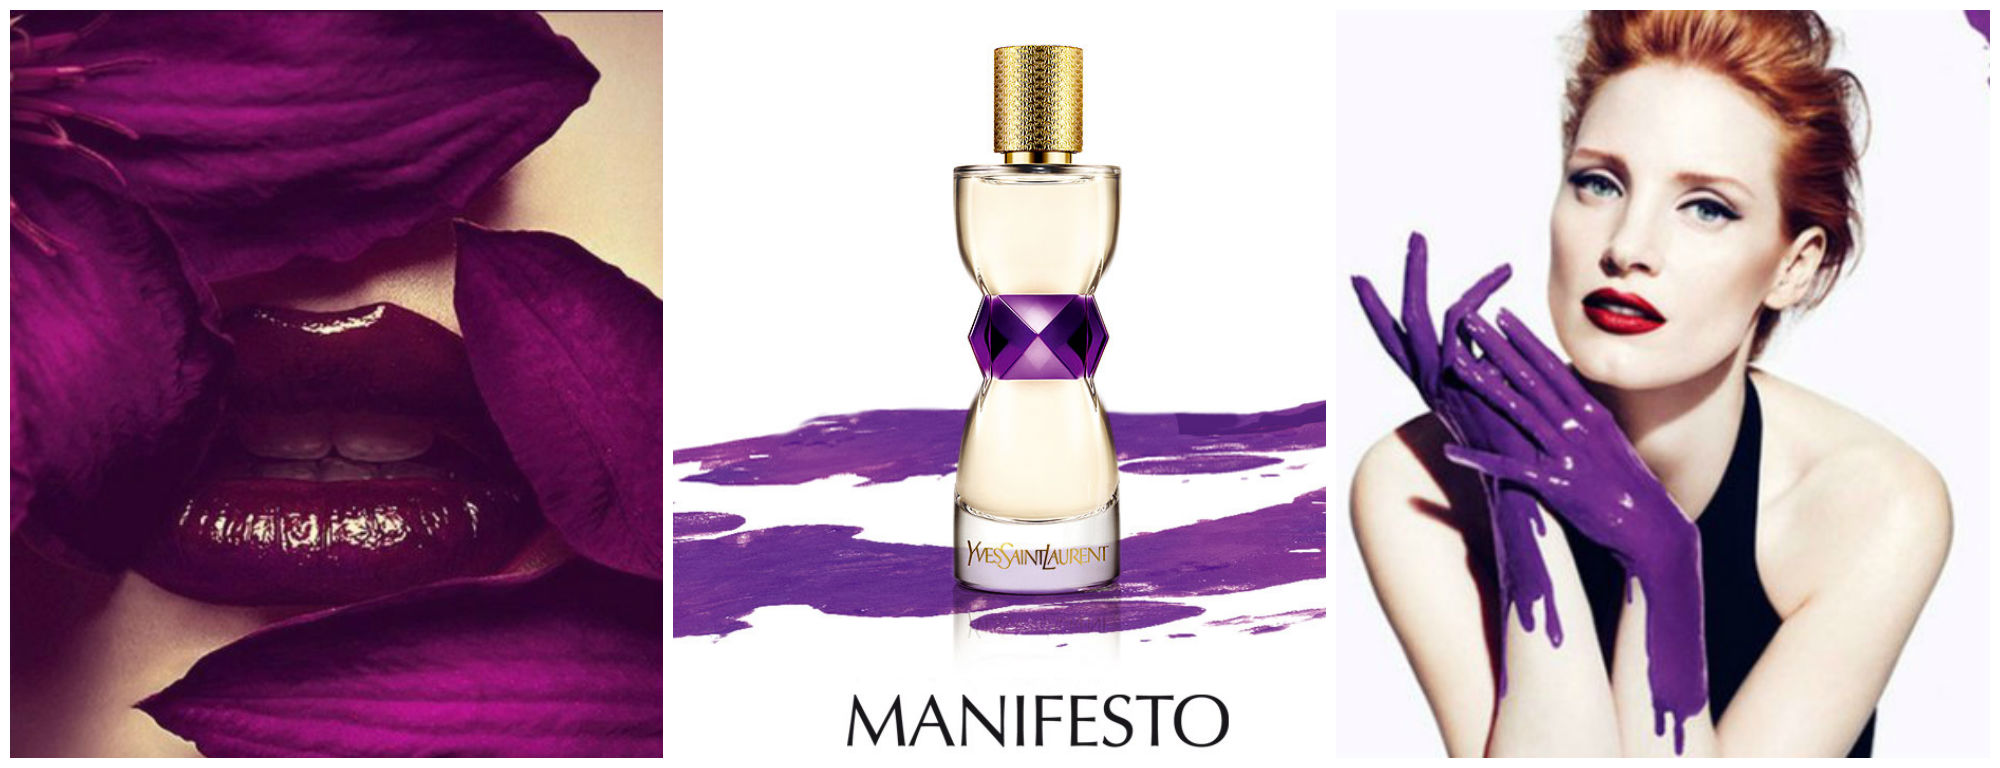 Perfume of the Day:  Manifesto by Yves Saint Laurent